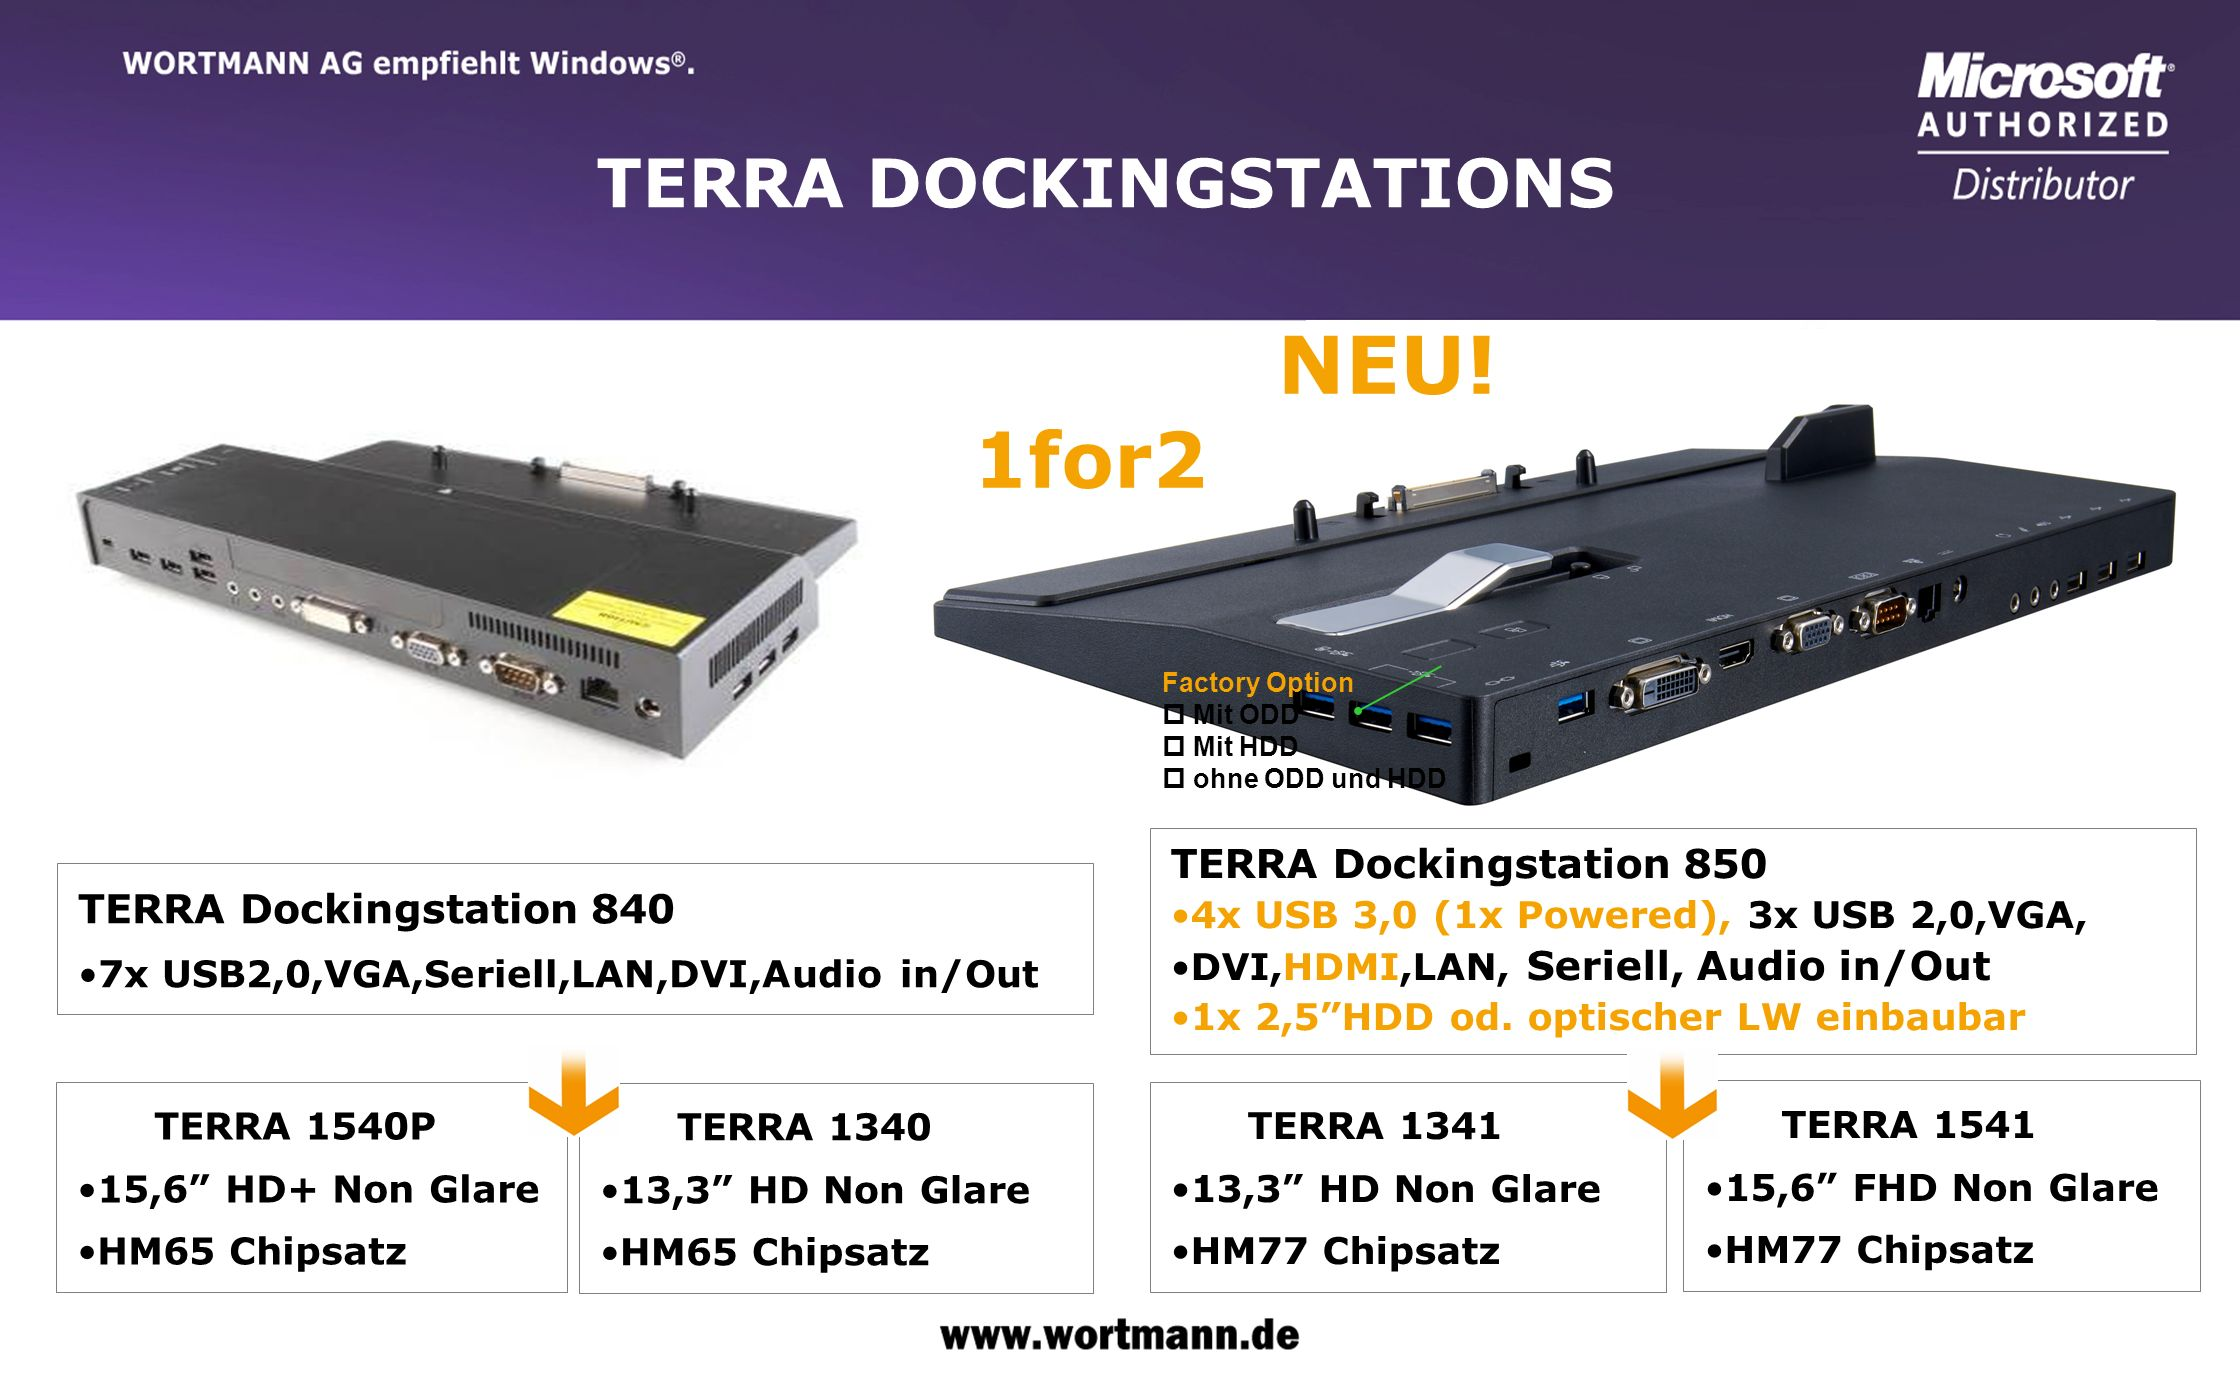 NEU! 1for2 TERRA DOCKINGSTATIONS TERRA Dockingstation 850